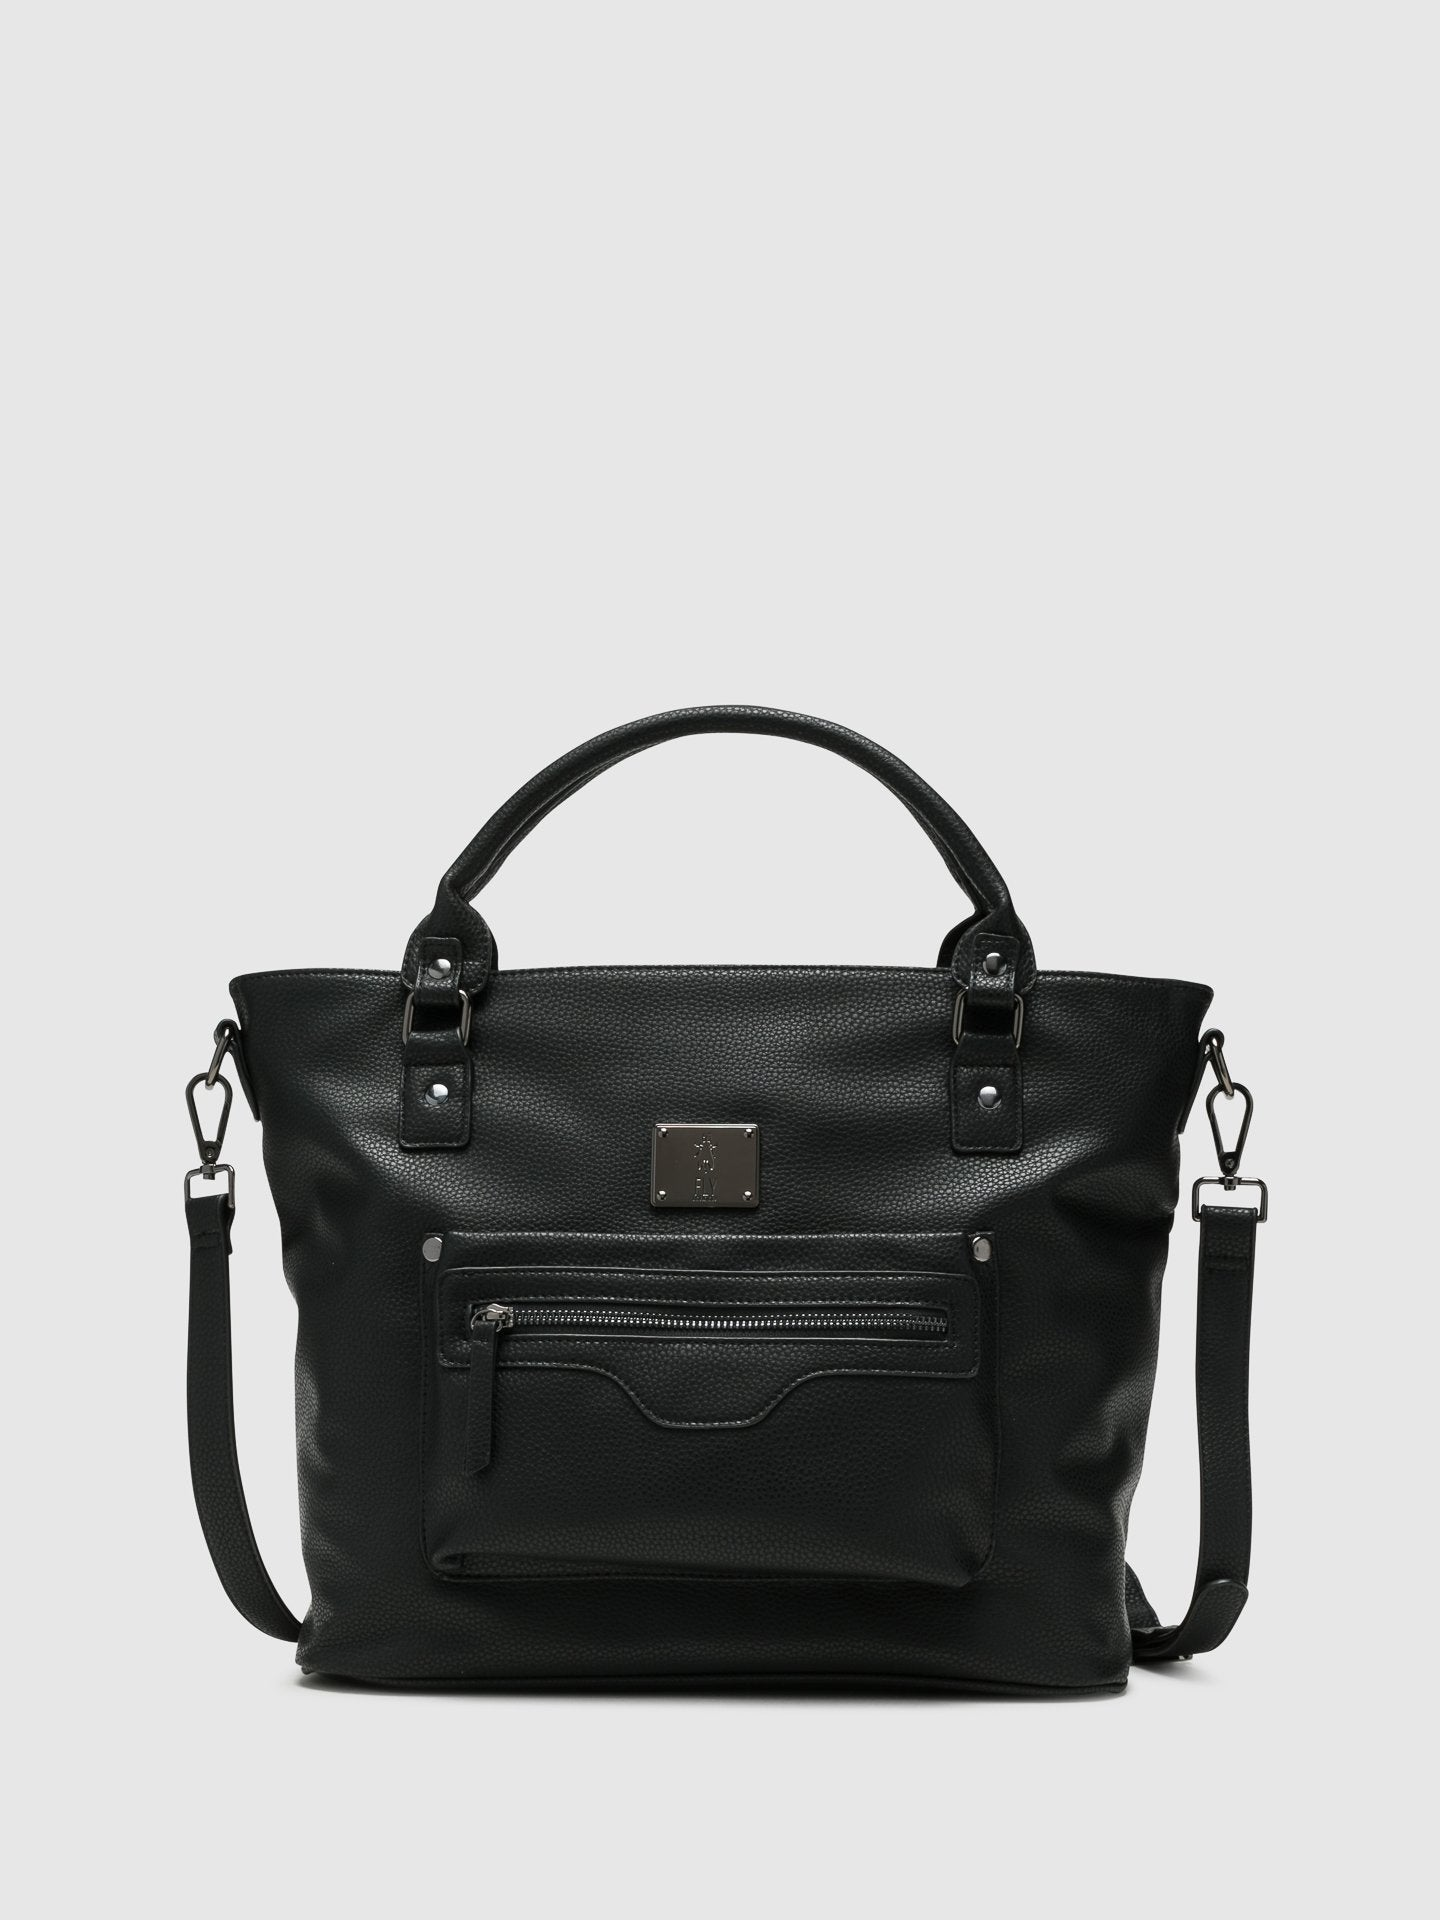 Fly London Black Handbag Bags